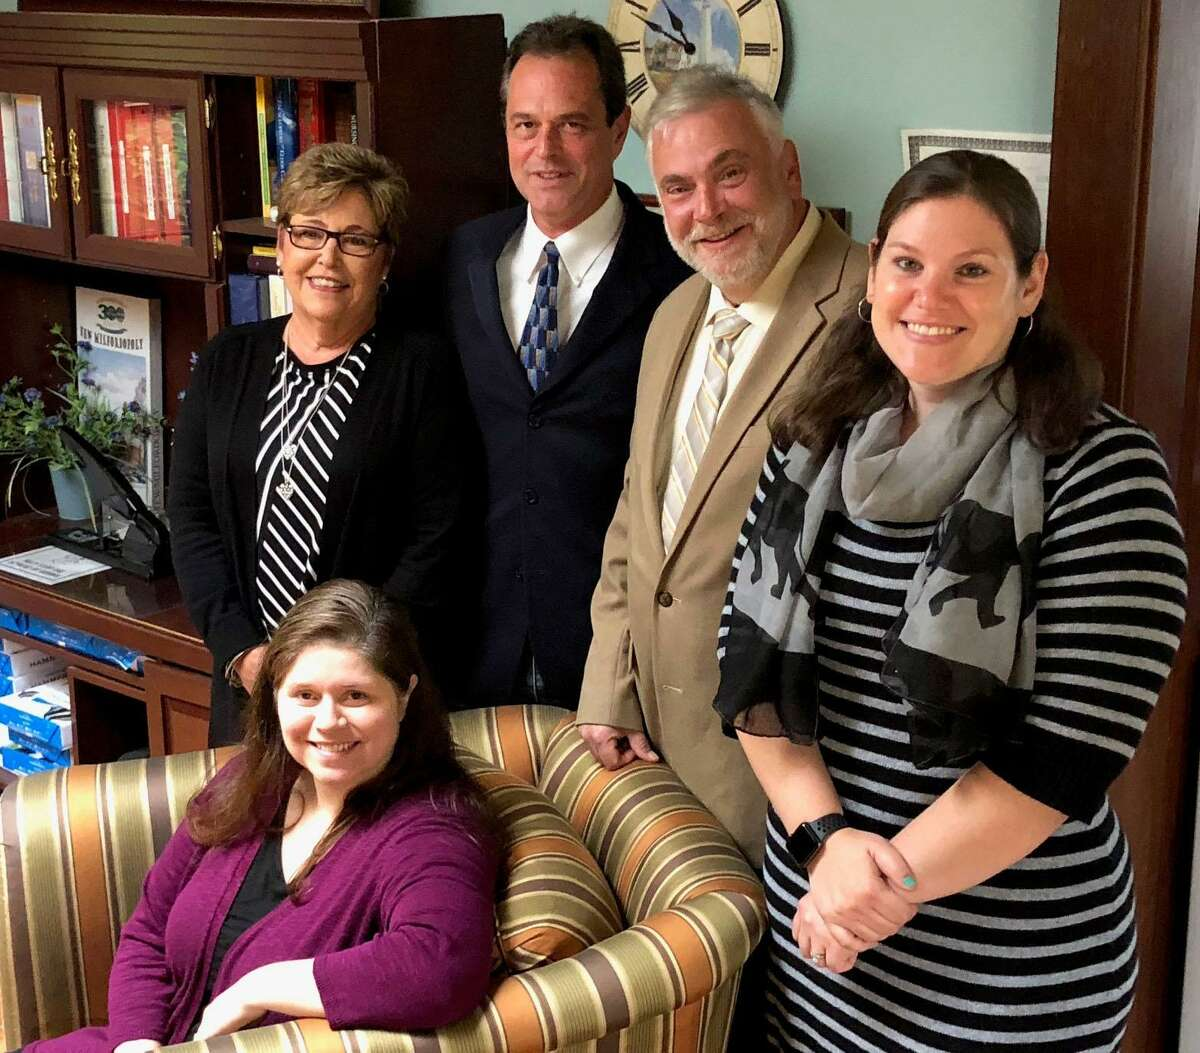 GeronNursing & Respite Care in New Milford is celebrating its 30th year this year. The agency is owned by Michael Gold, second from left in back. Joining Gold are Alyssa Krasowski, on-call coordinator, front, and in back, from left to right, Linda Fecko, director of human resources, Roger Arguello, chief finance officer, and Jaime Pol, assistant administrator.